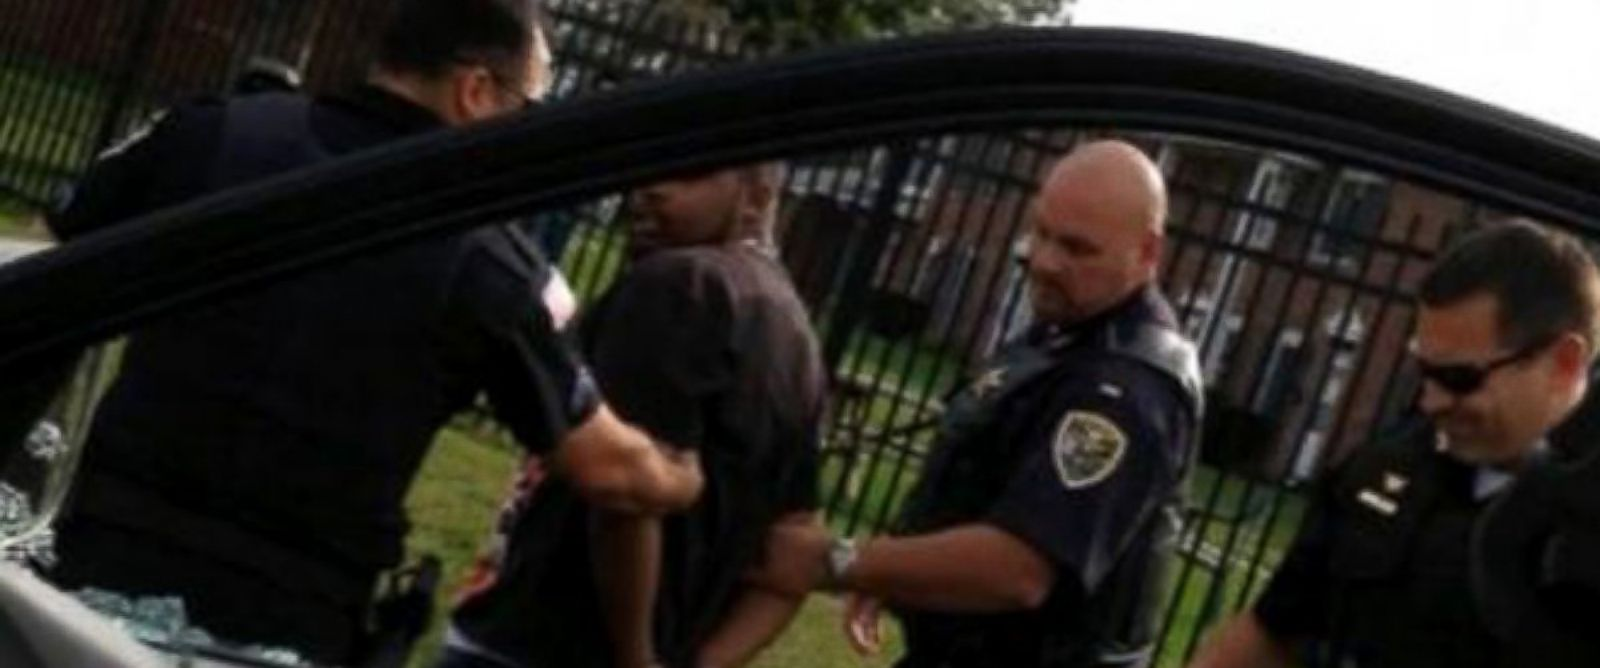 PHOTO: A grab from a video showing Jamal Jones being detained during a routine traffic stop. The family is suing the police department for excessive force after an officer smashed a car window.